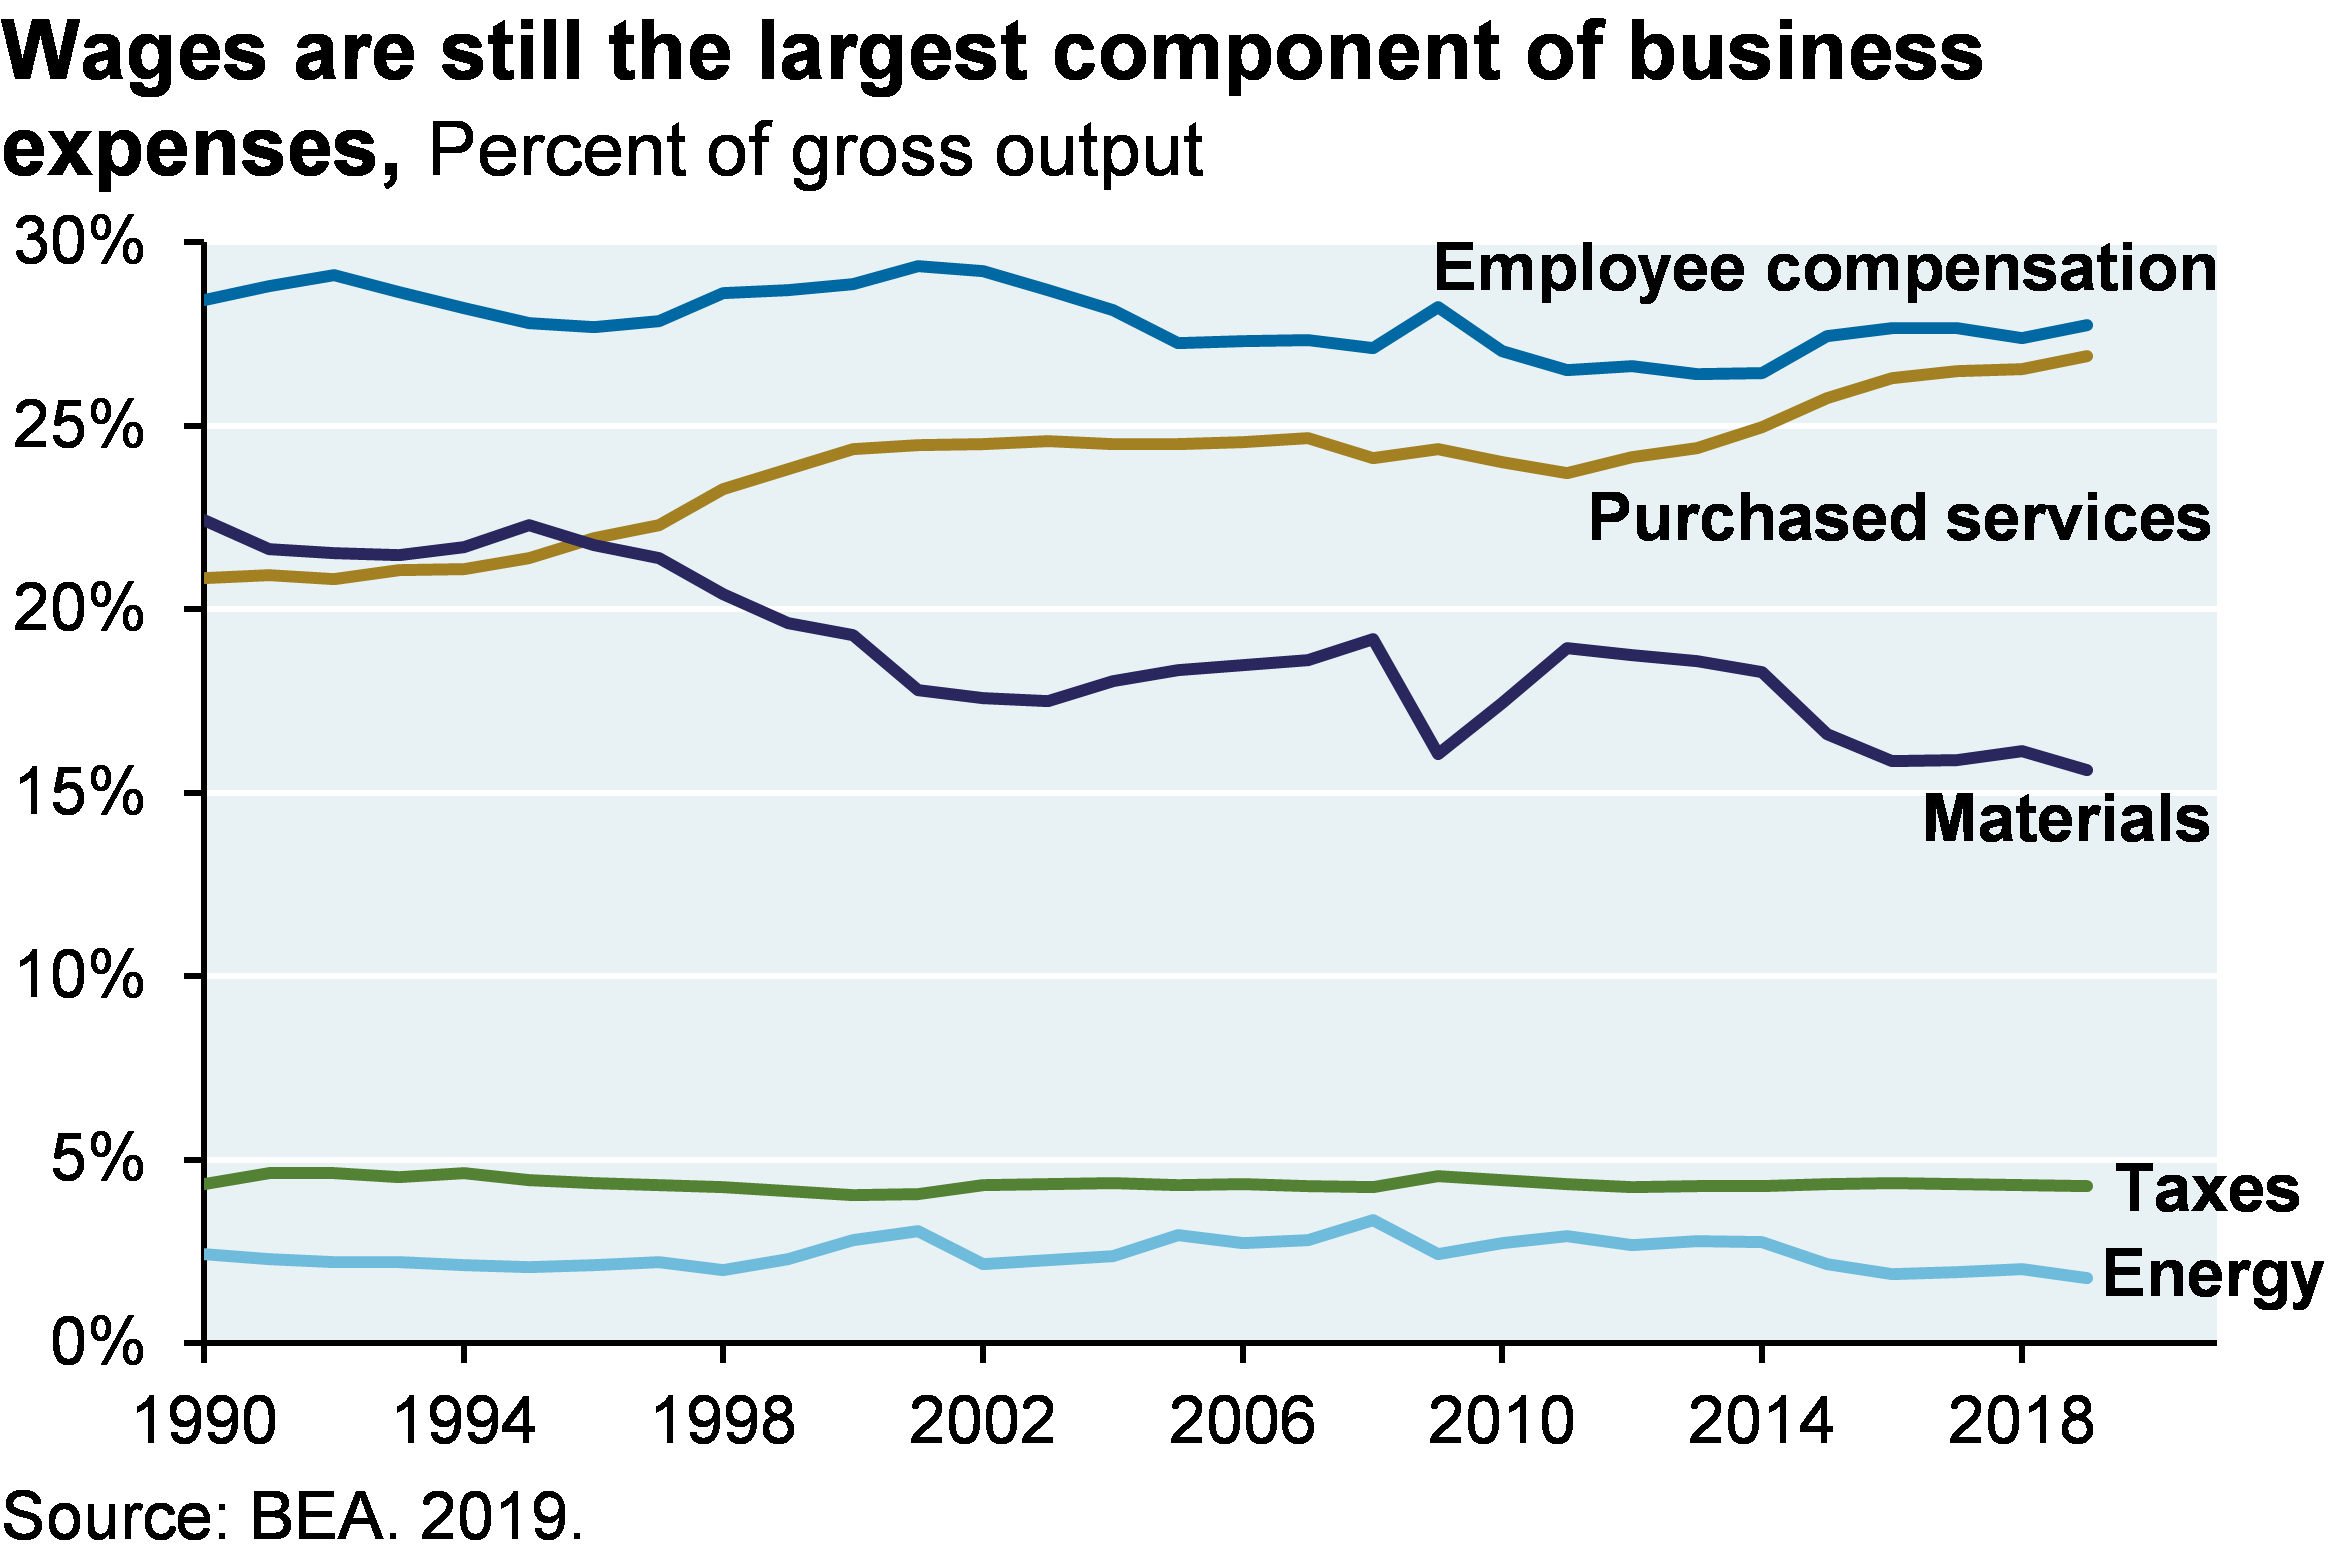 Line chart which shows various business expenses as percent of gross output. The chart includes employee compensation, purchased services, materials, taxes and energy. Wages have been the largest component of business expenses since 1990 and are currently 27% of gross output.